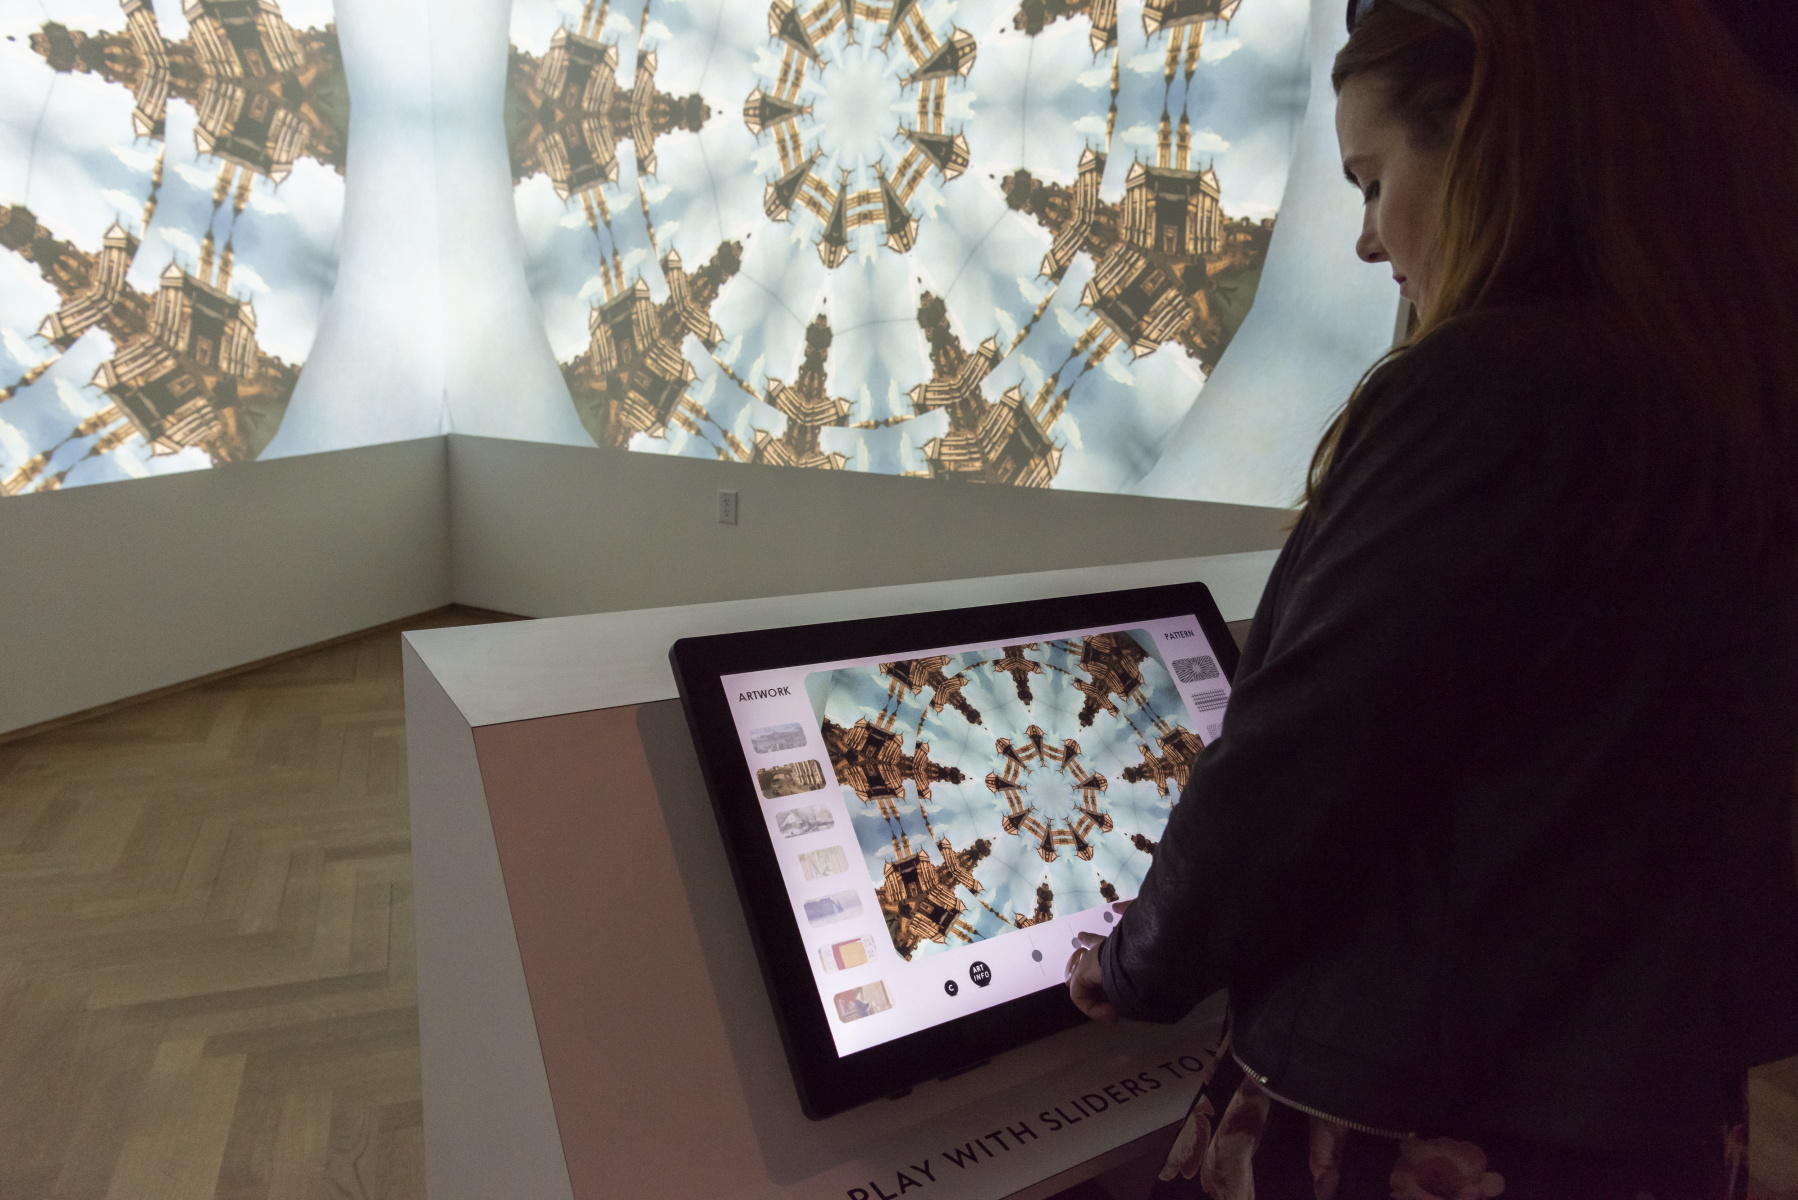 Create Your Own Immersive Room